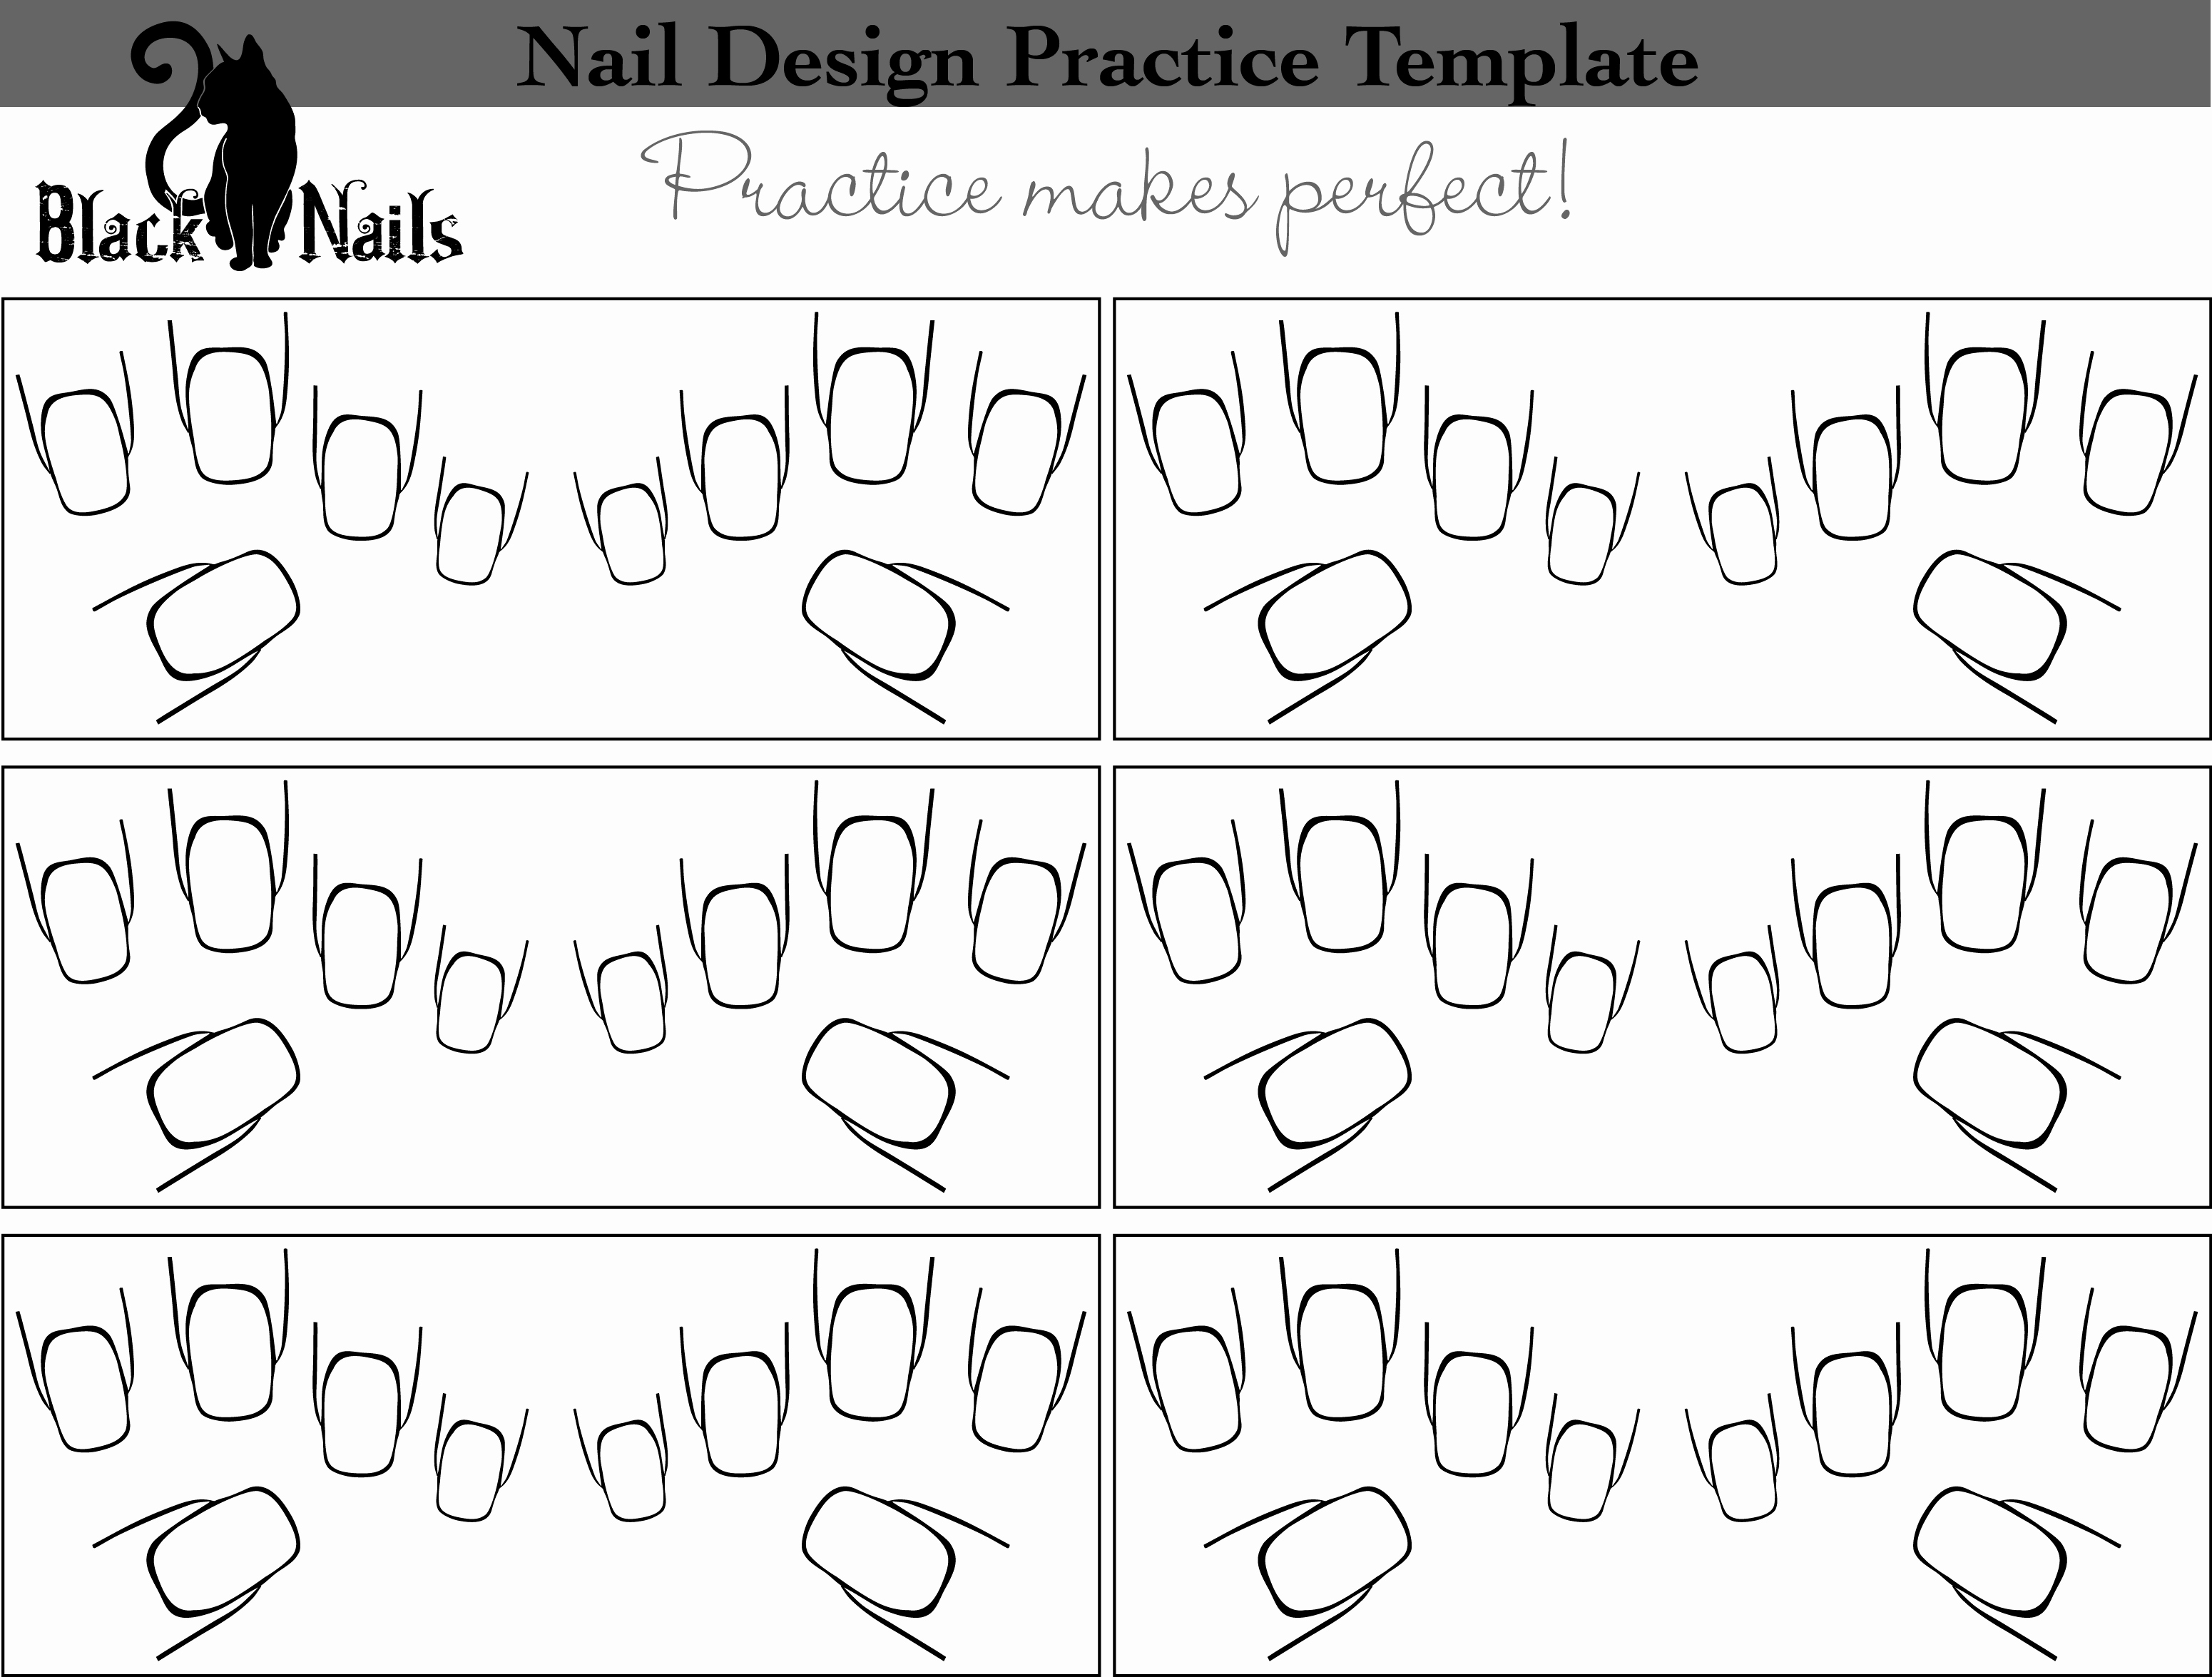 Printable Nail Art Templates Inspirational Nail Art Design Practice Templates or Sheets All